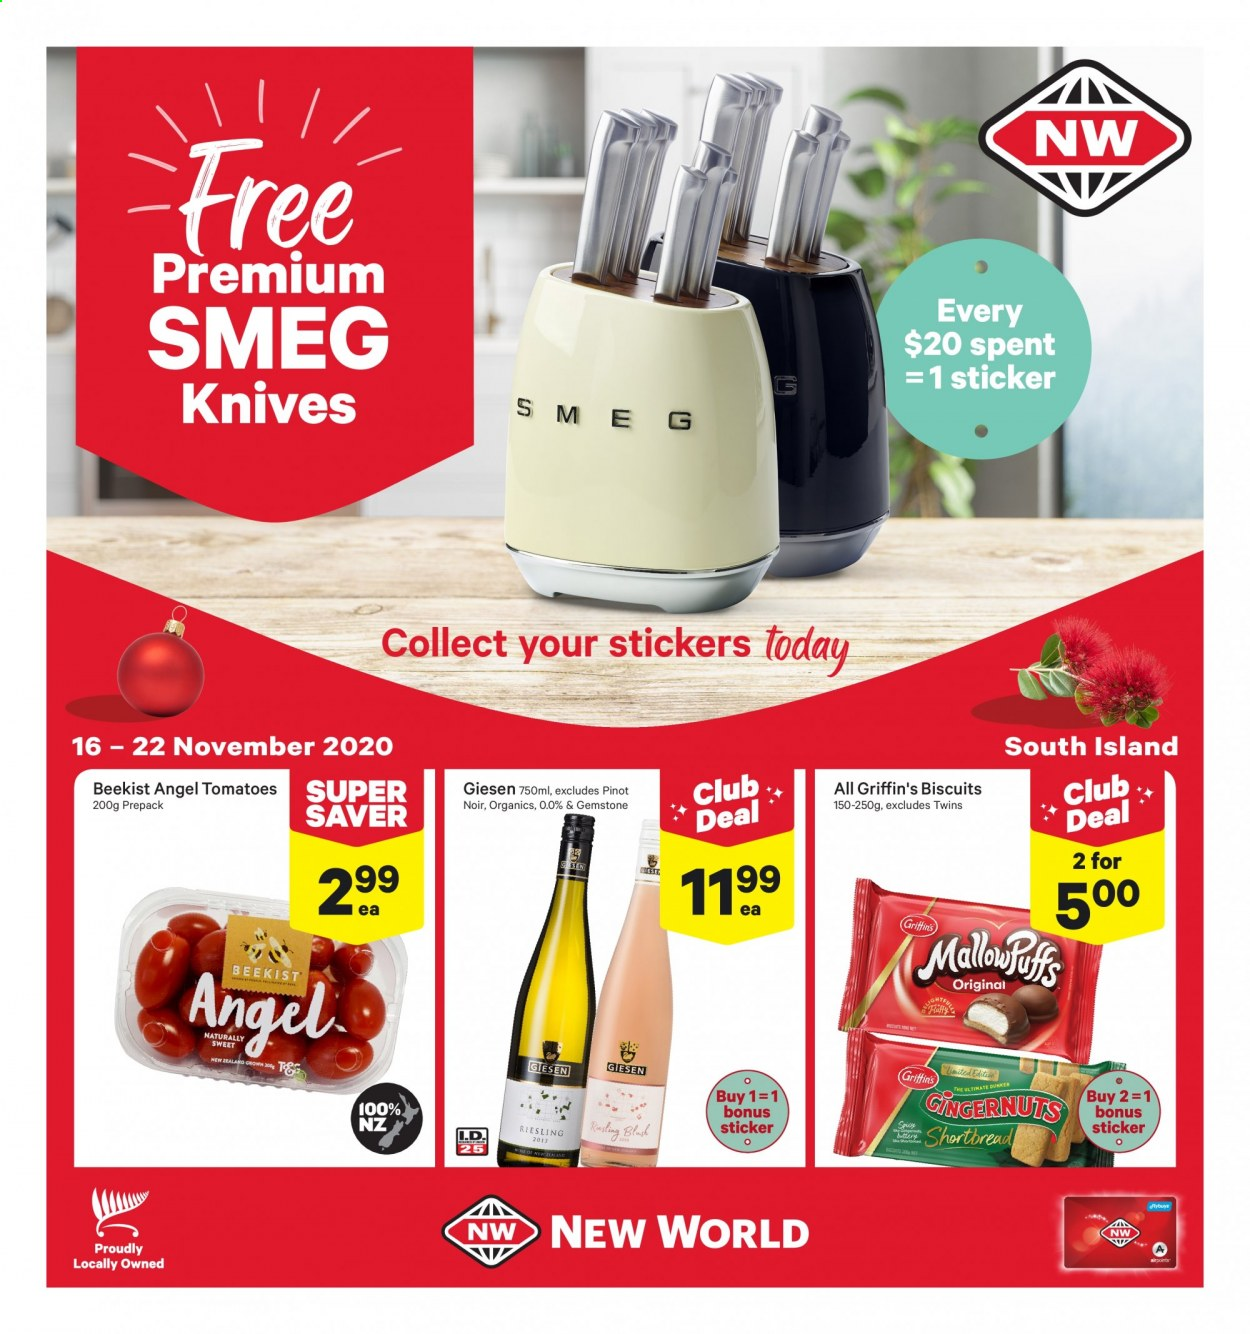 New World mailer - 16.11.2020 - 22.11.2020 - Sales products - angel, biscuits, knife, riesling, stickers, tomatoes, sticker, tomato, smeg. Page 1.